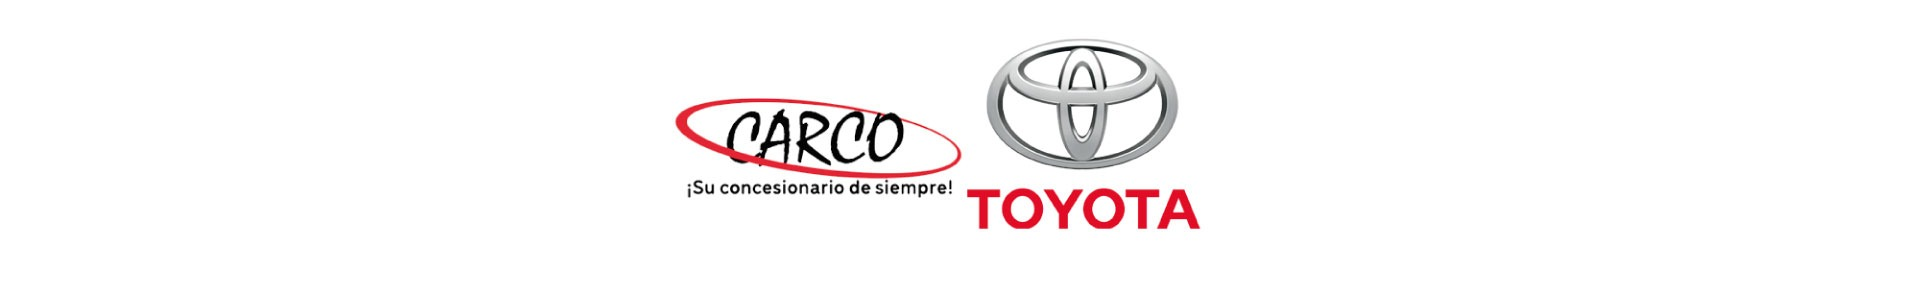 banner-carco-toyota